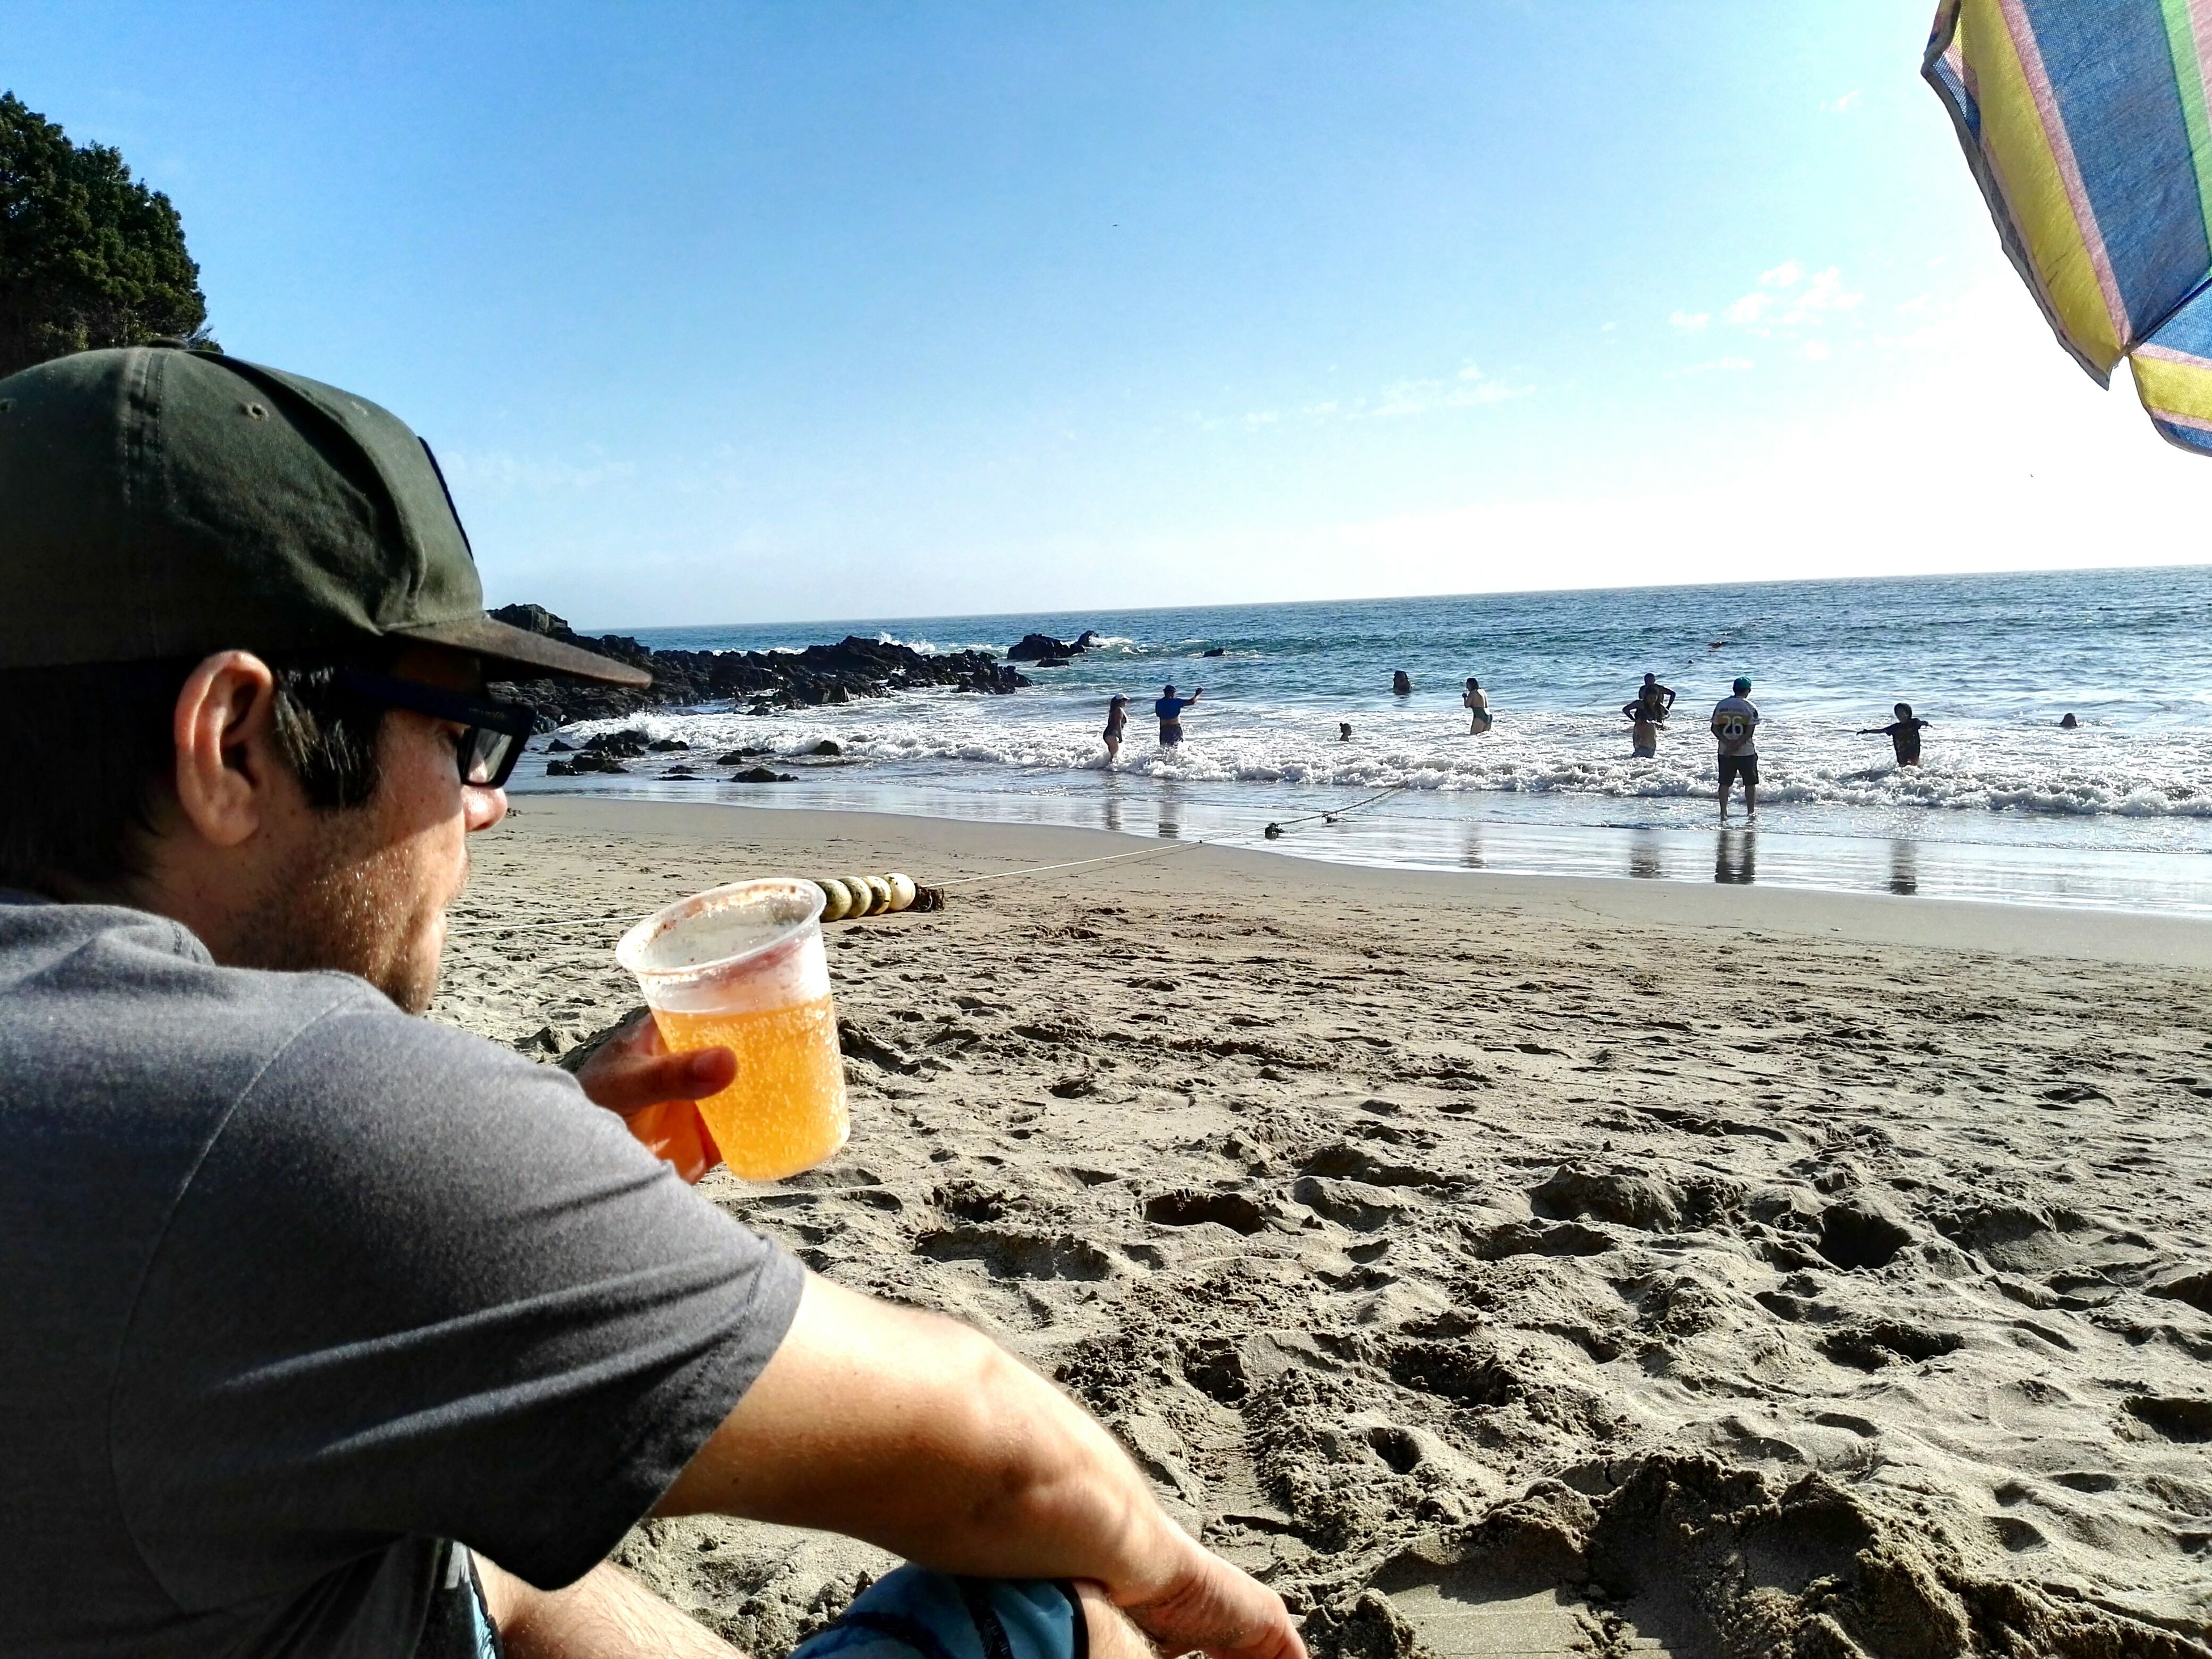 sea, beach, water, sky, clear sky, sand, real people, day, outdoors, lifestyles, men, nature, vacations, drink, horizon over water, close-up, people, adult